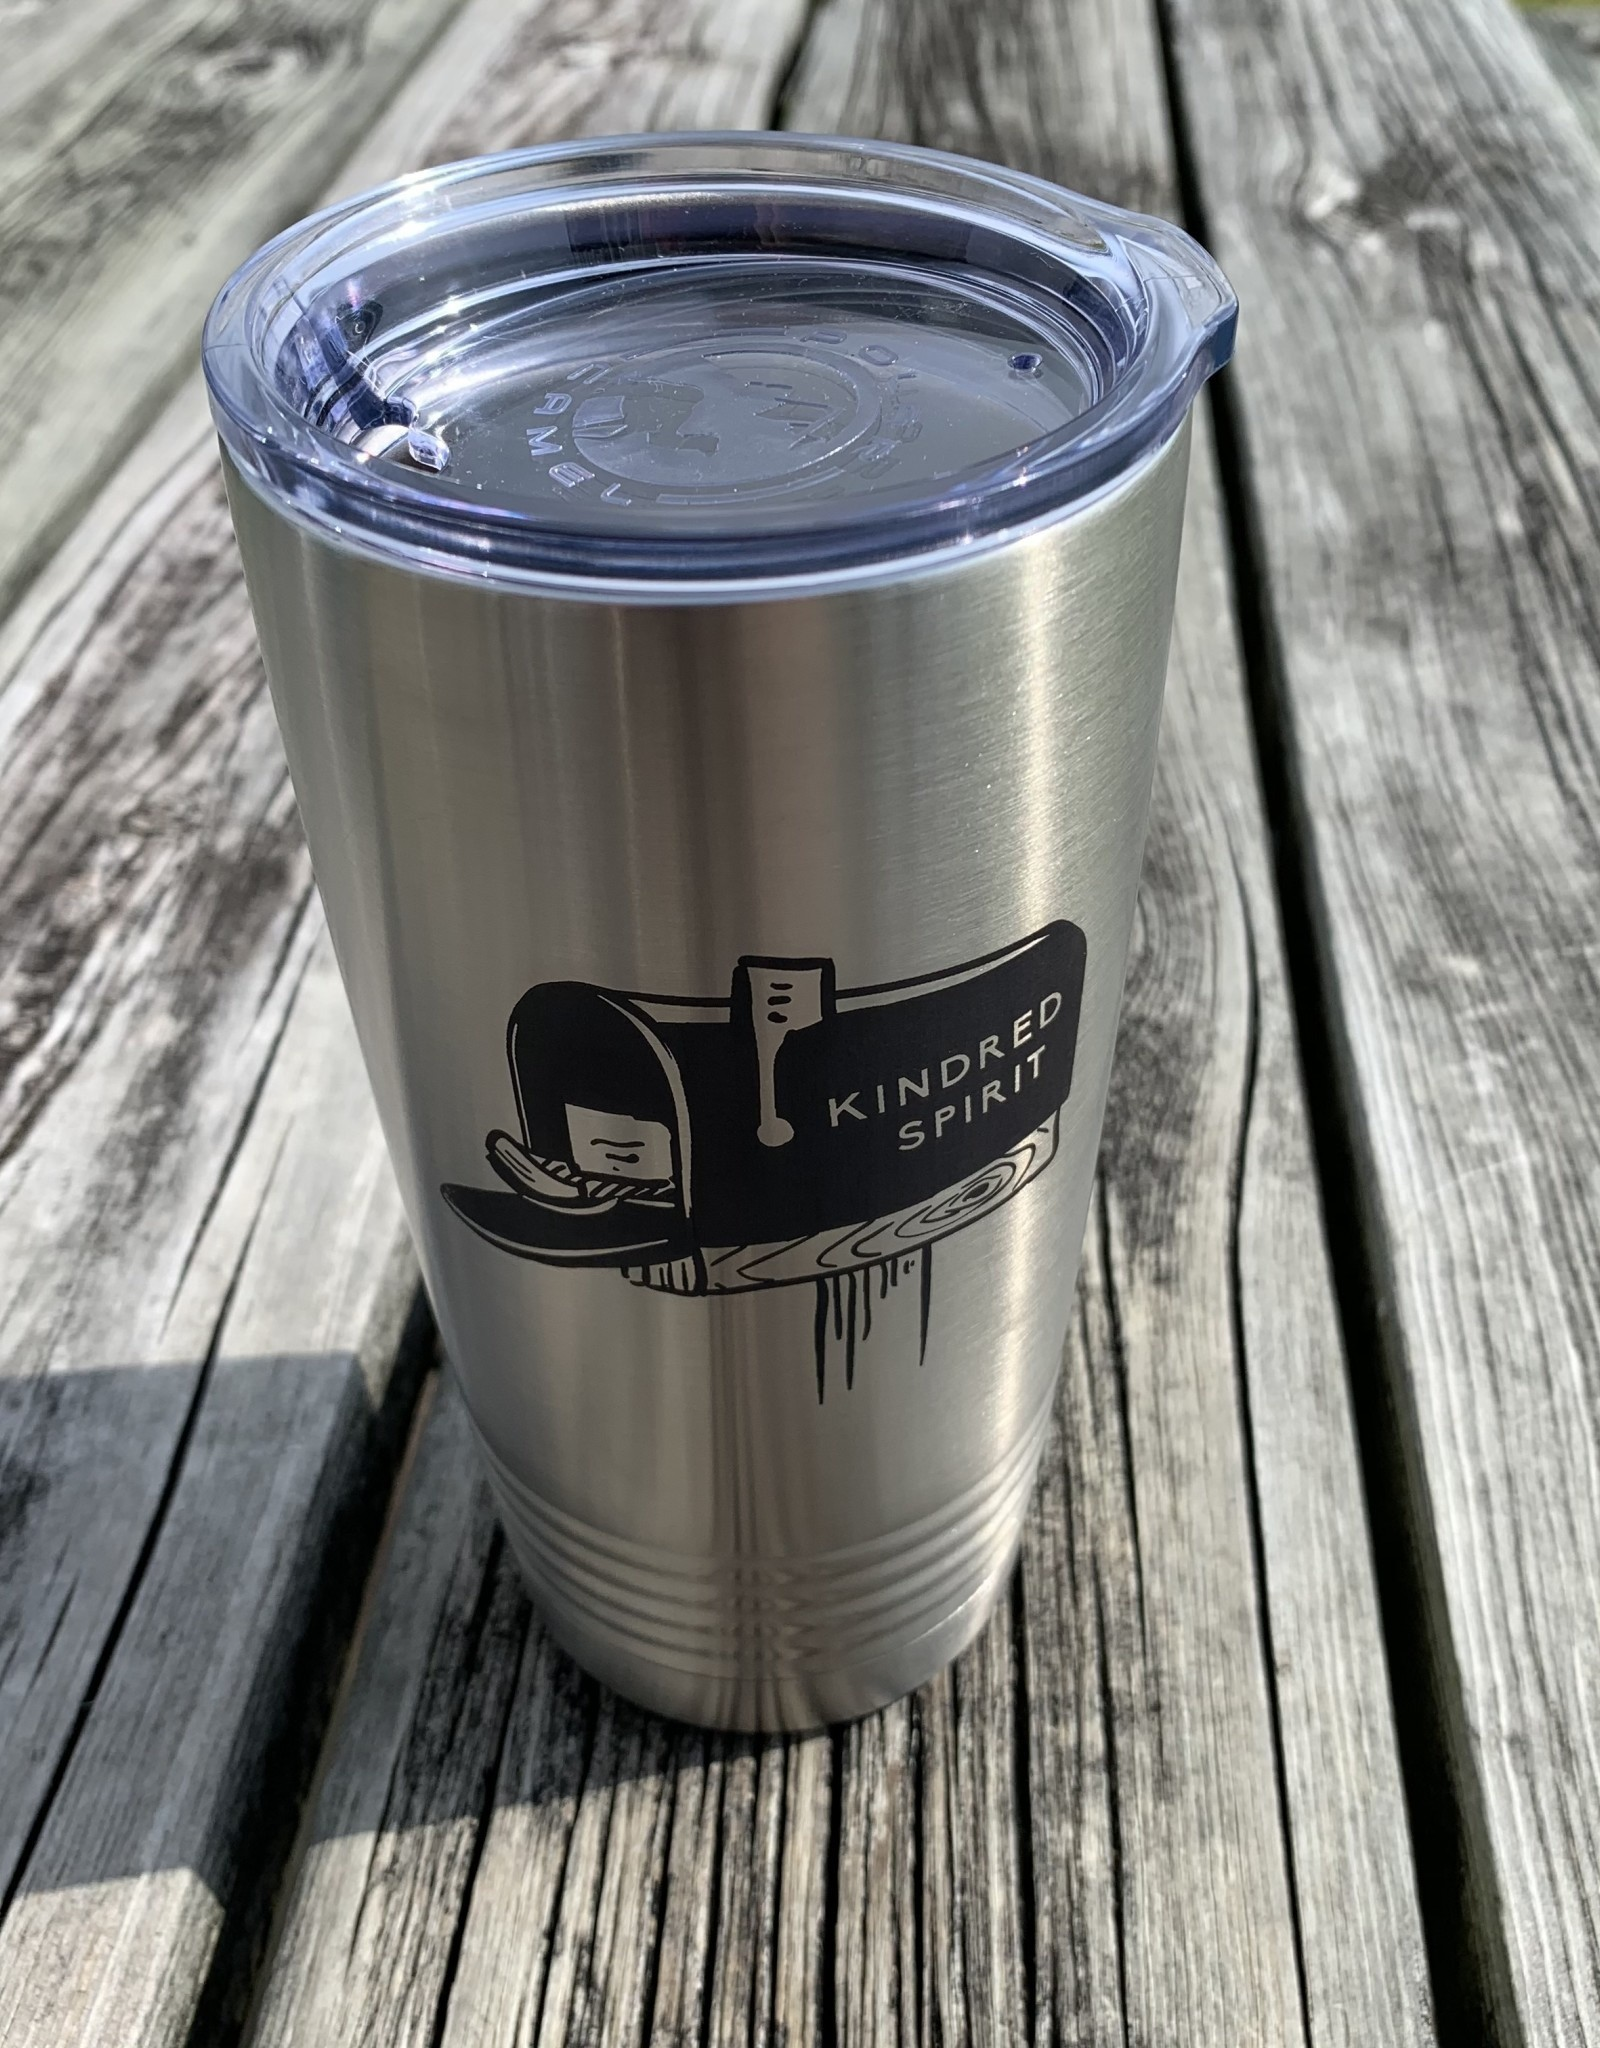 KINDRED SPIRIT 20oz TUMBLER STAINLESS STEEL